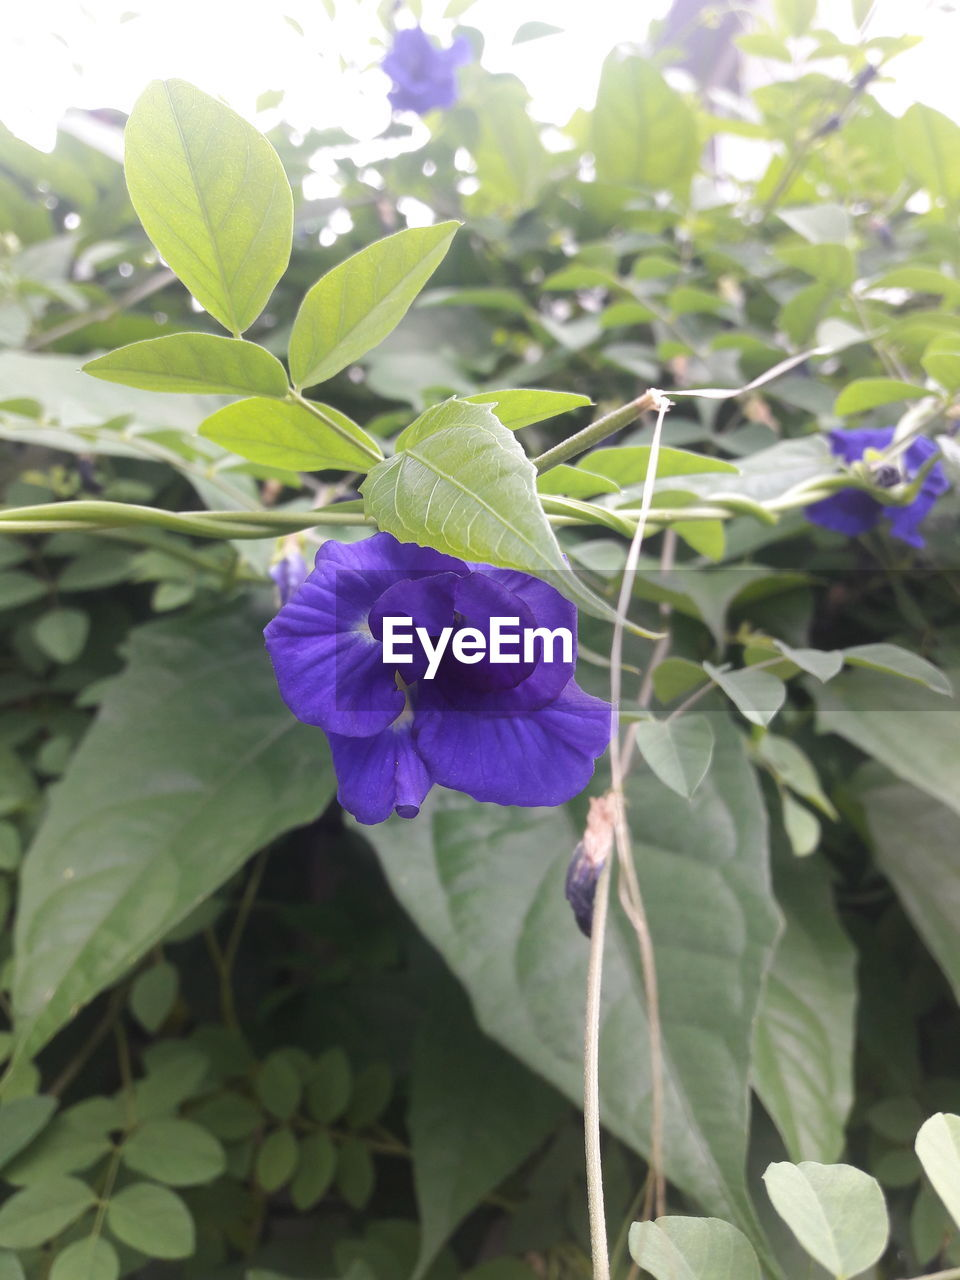 flower, growth, beauty in nature, petal, plant, leaf, nature, fragility, freshness, purple, green color, blooming, no people, flower head, day, outdoors, close-up, petunia, periwinkle